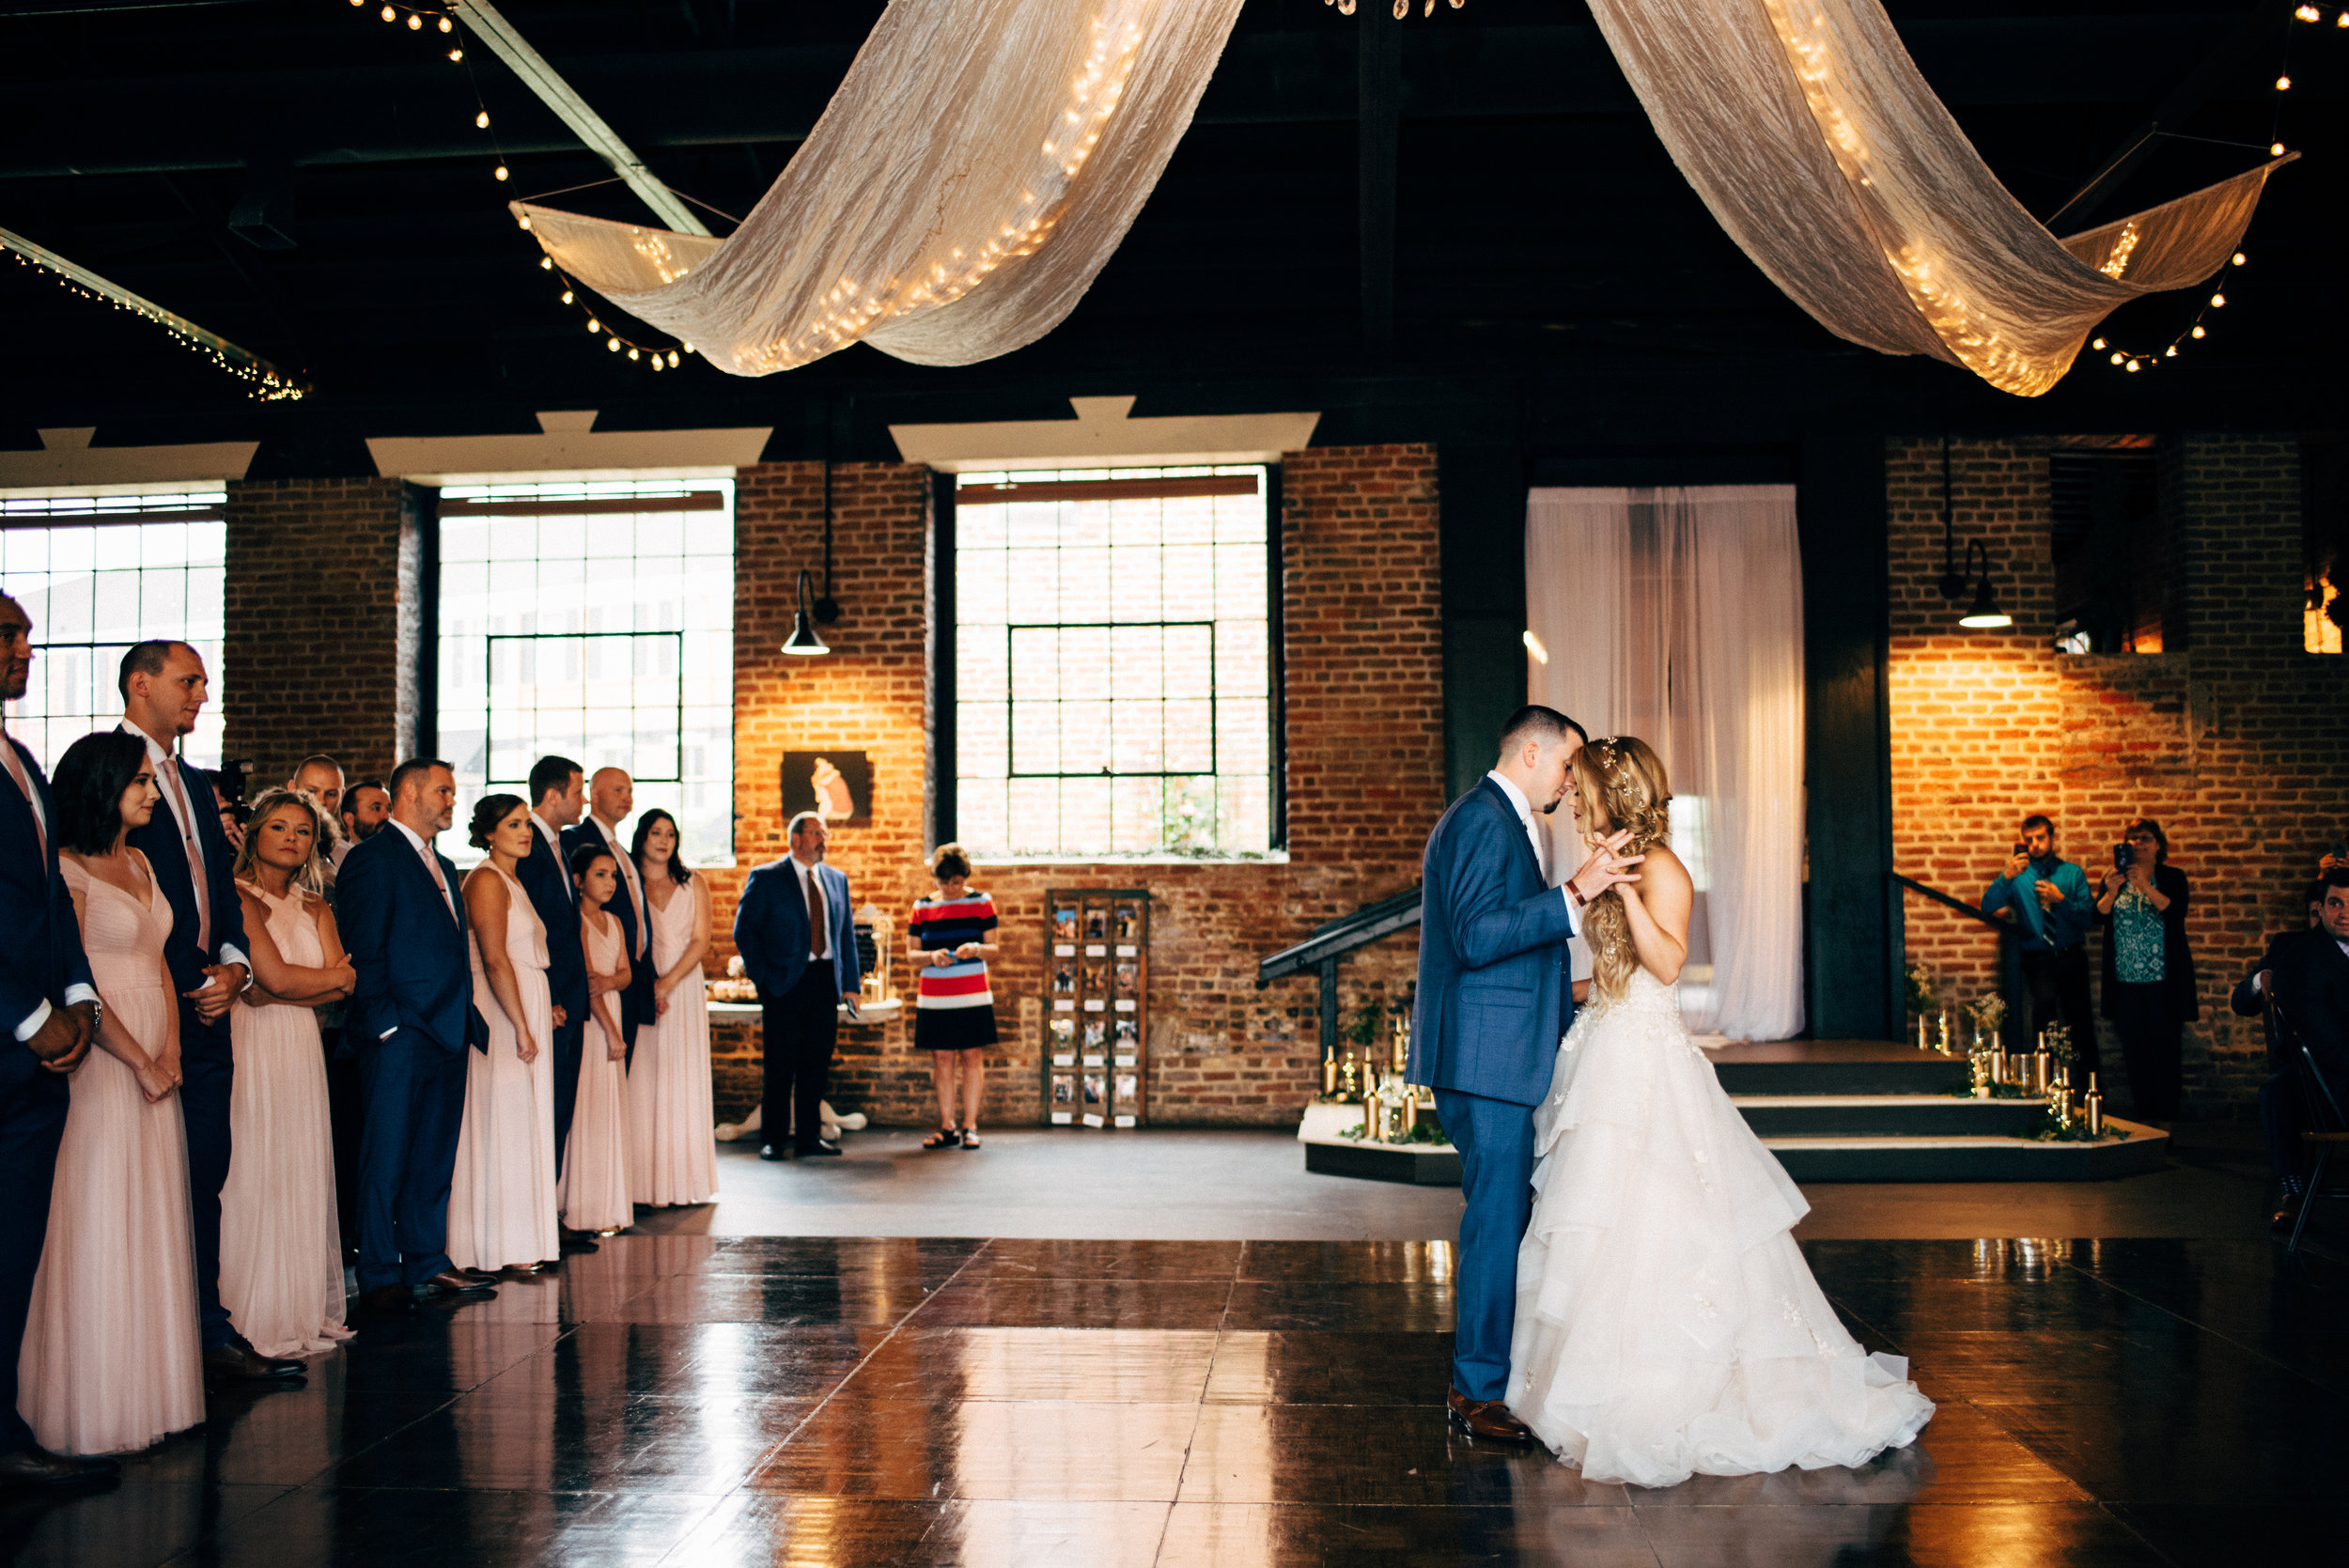 bride and groom first dance during wedding reception at the Inn at the Old Silk Mill